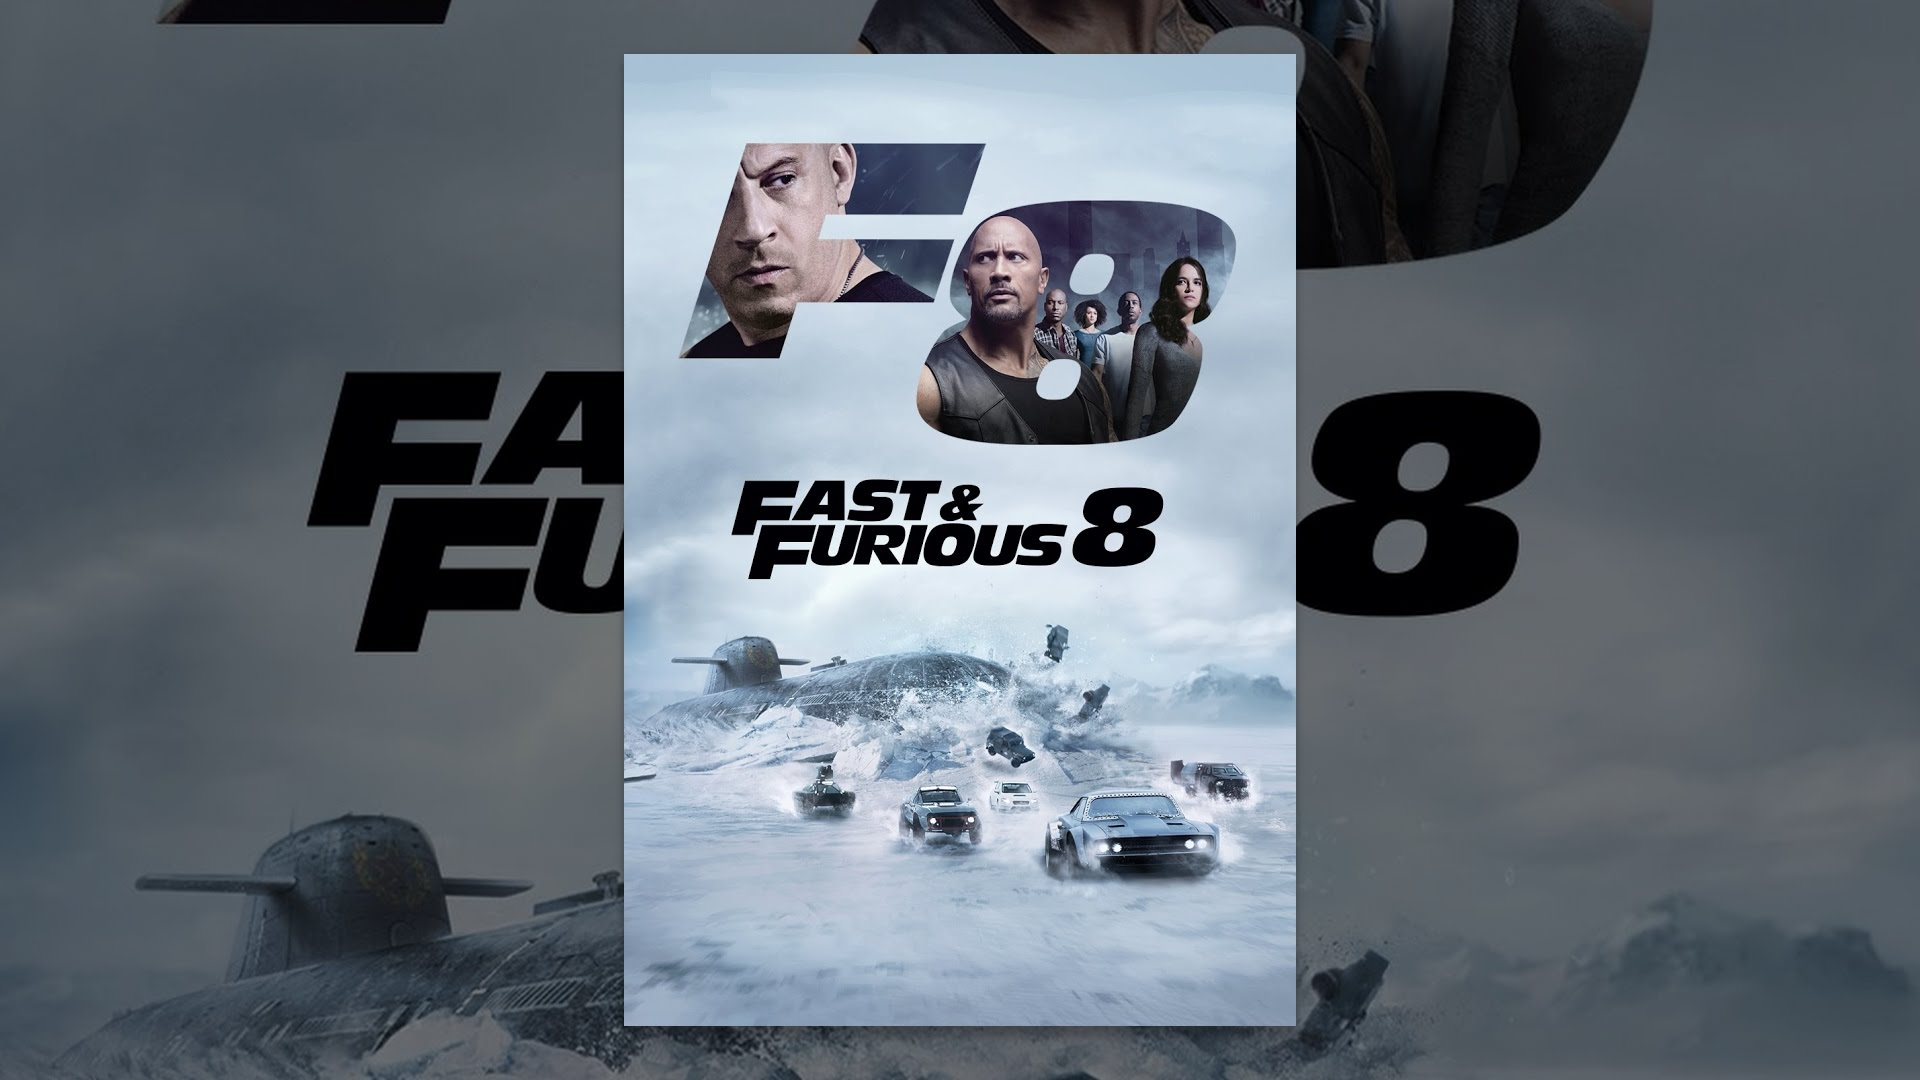 Download Fast & Furious 8